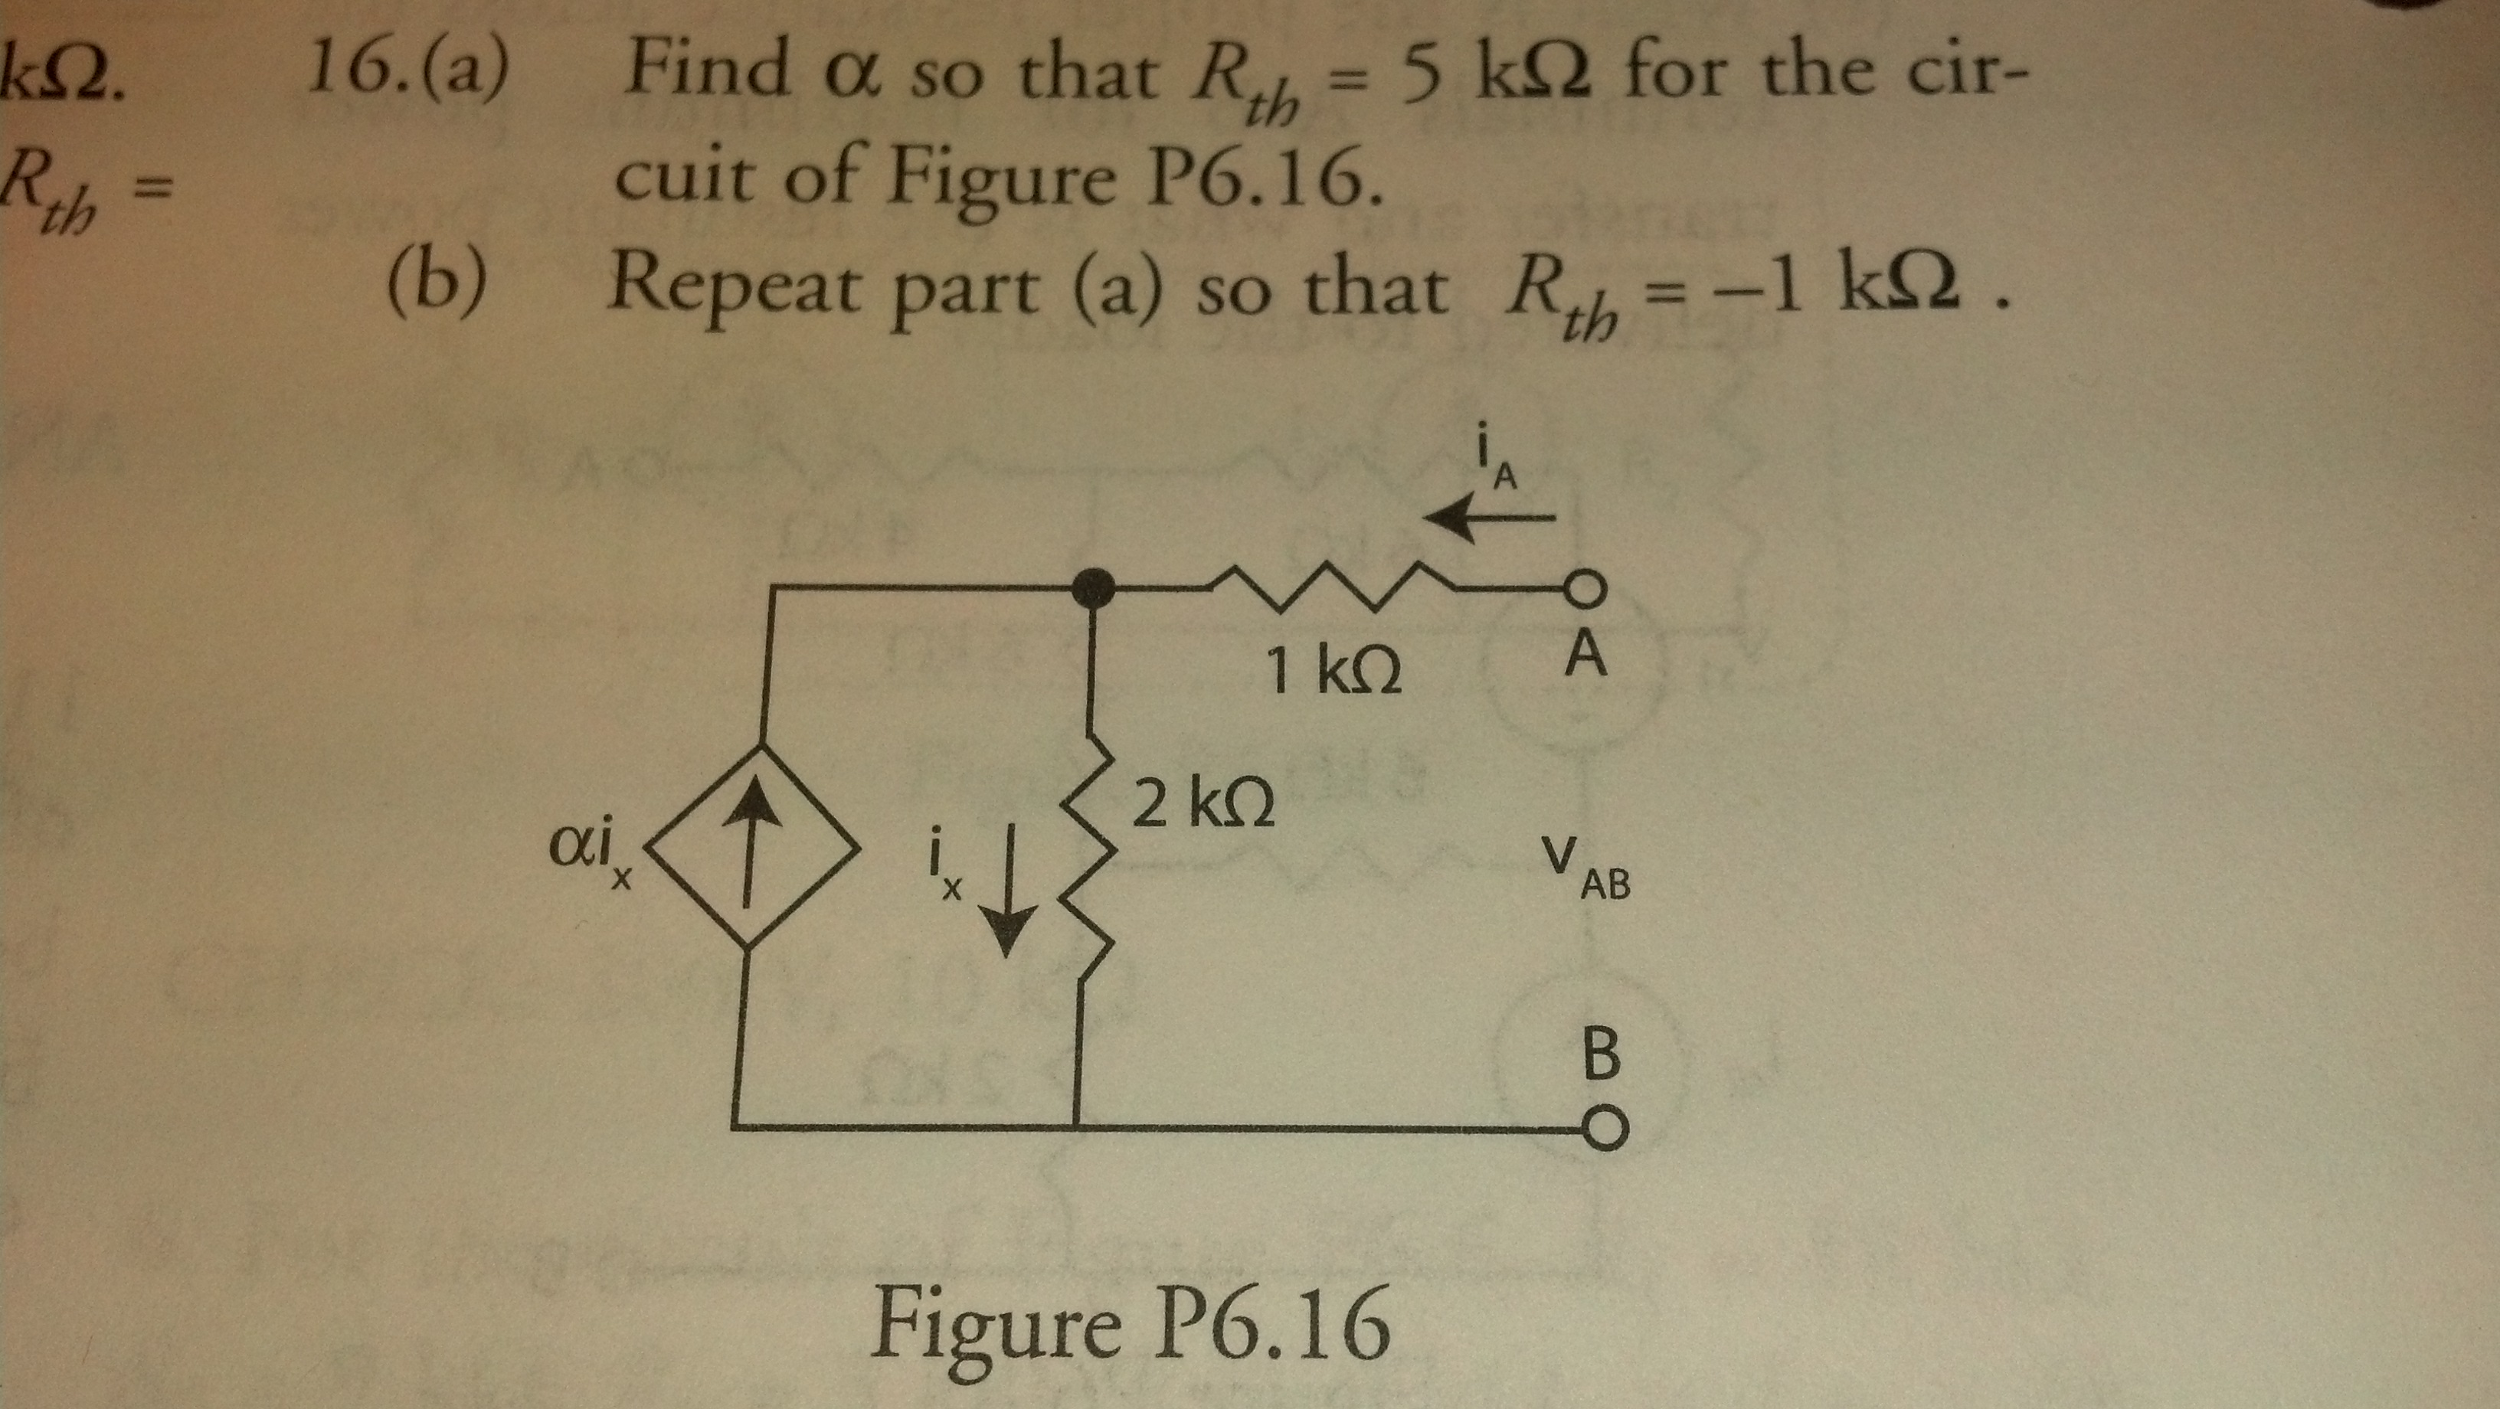 Find alpha so that Rth = 5 k ohm for the circuit o